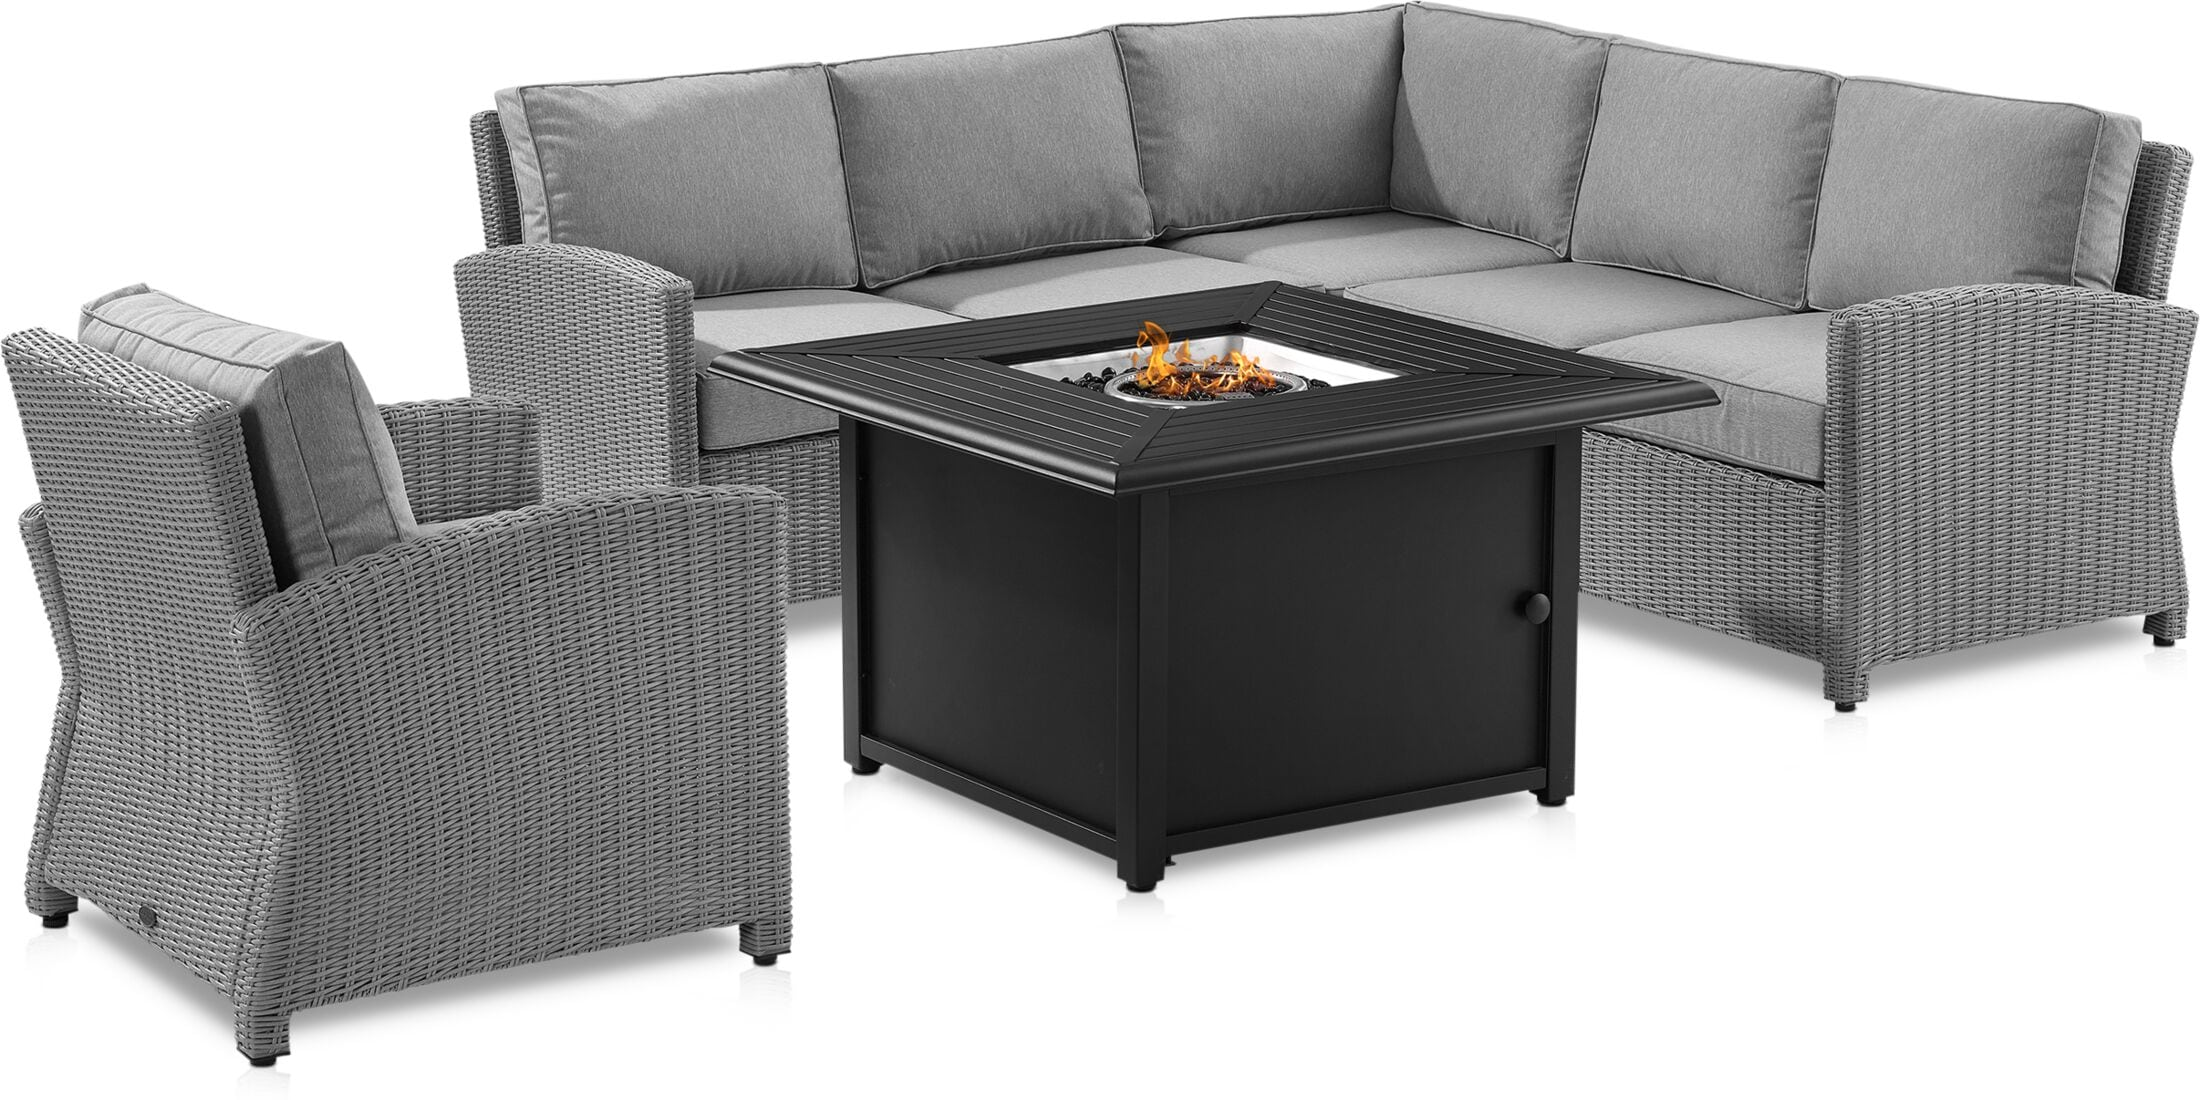 Outdoor Furniture - Destin Outdoor 3-Piece Sectional, Chair and Tybee Fire Table Set